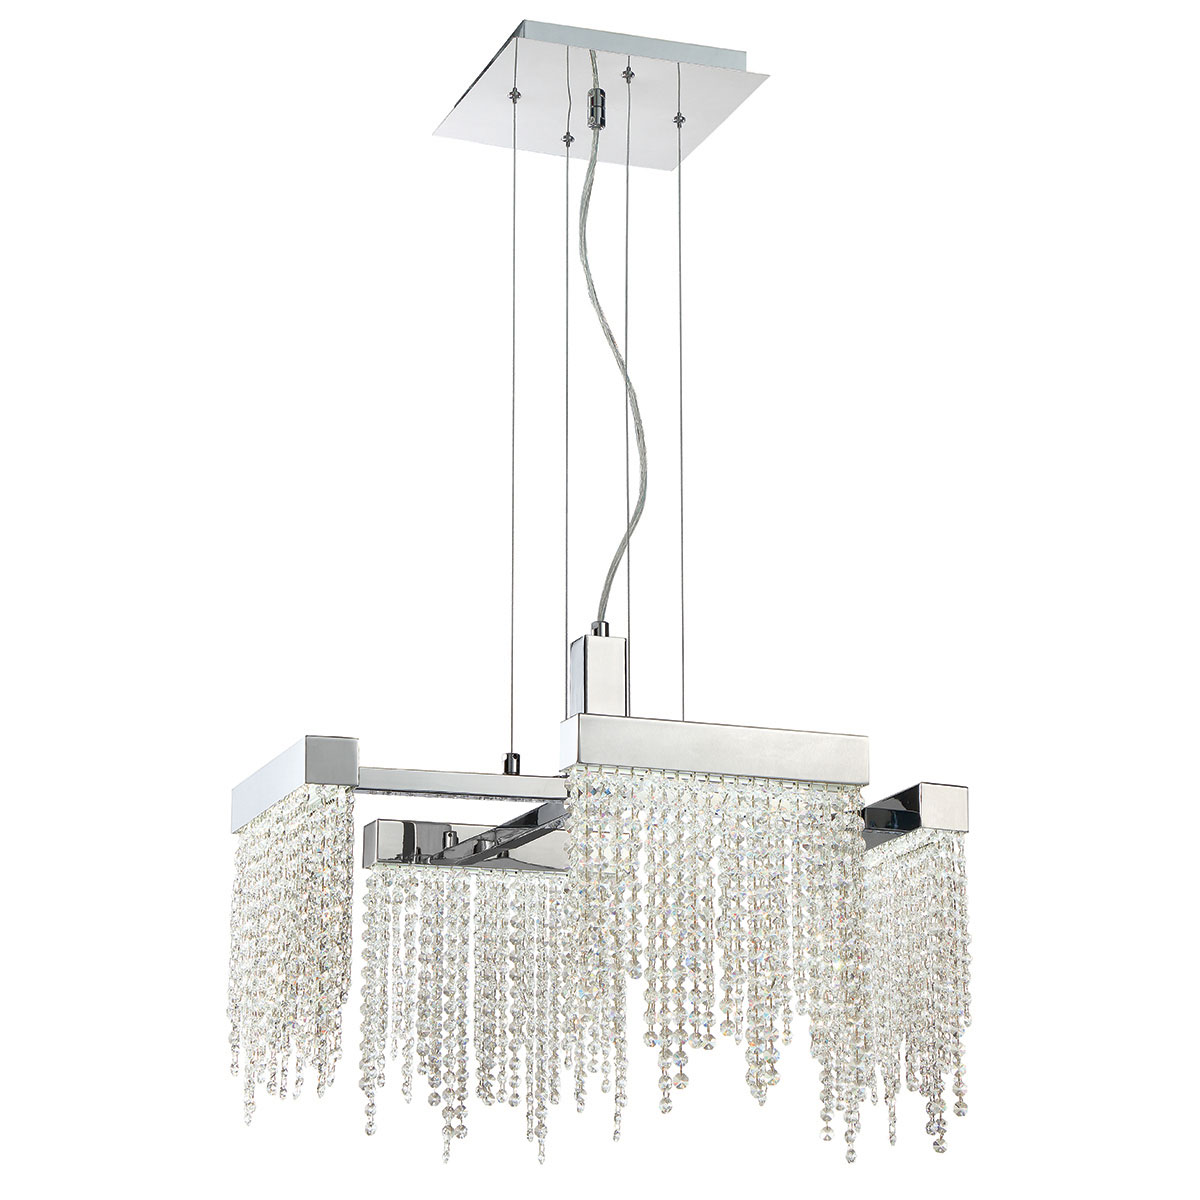 4 light chandelier by eurofase 30006 010 rossi 4 light chandelier by eurofase 30006 010 arubaitofo Images